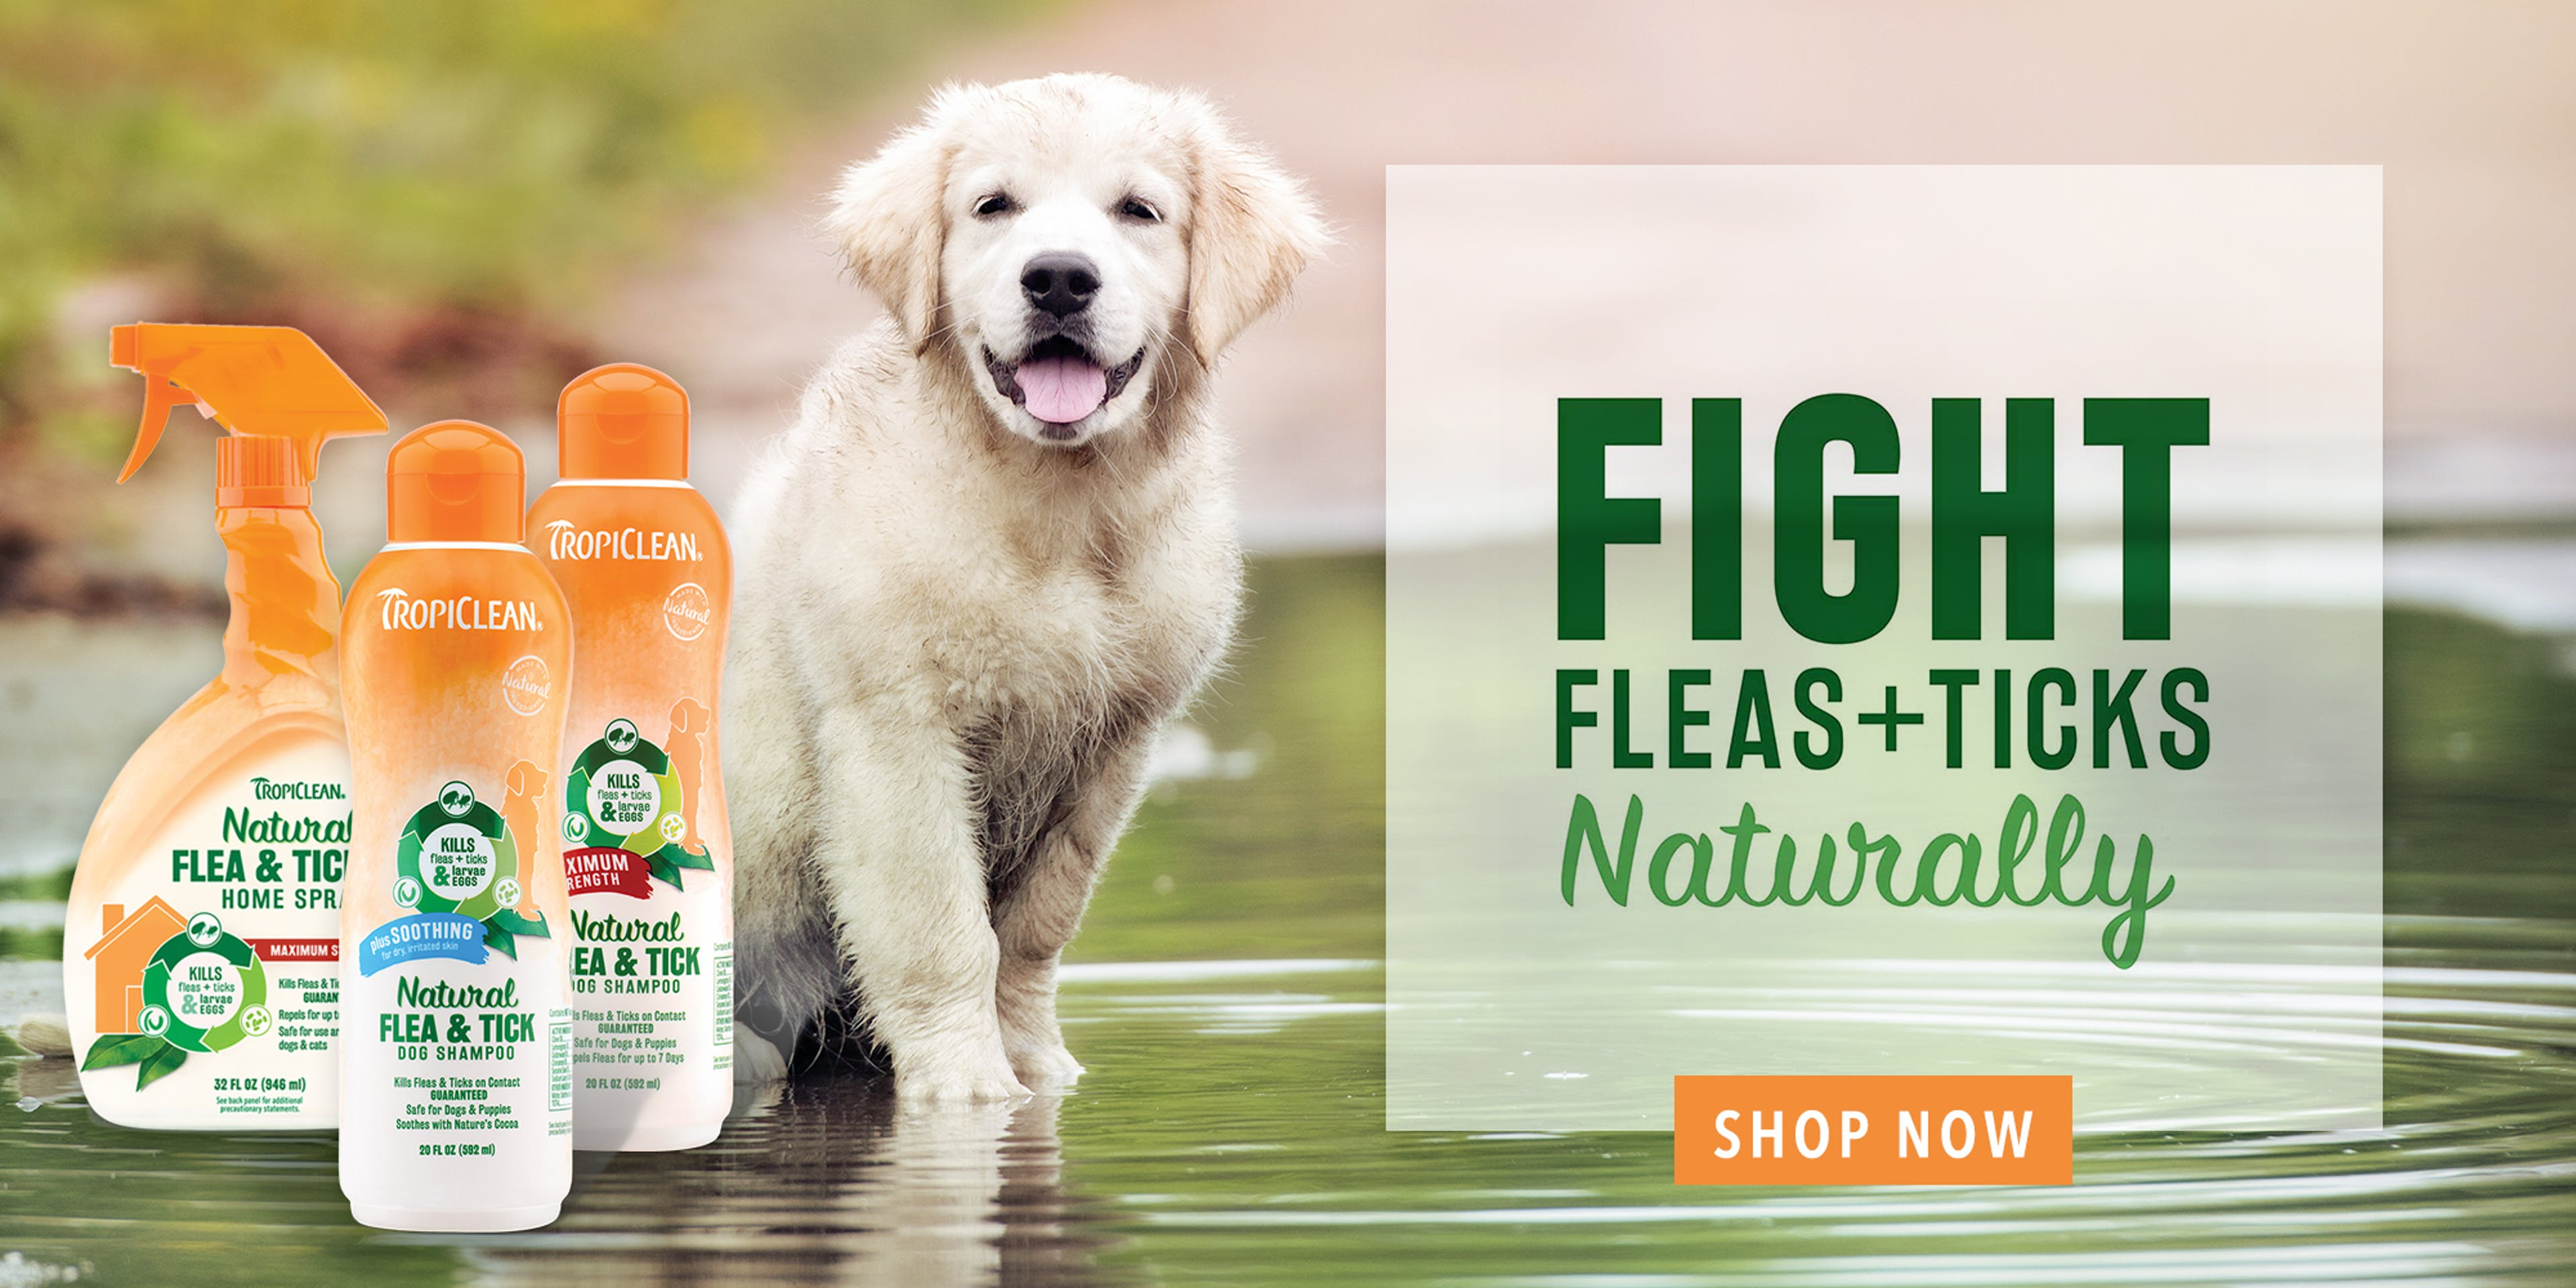 Tropiclean Flea and Tock products